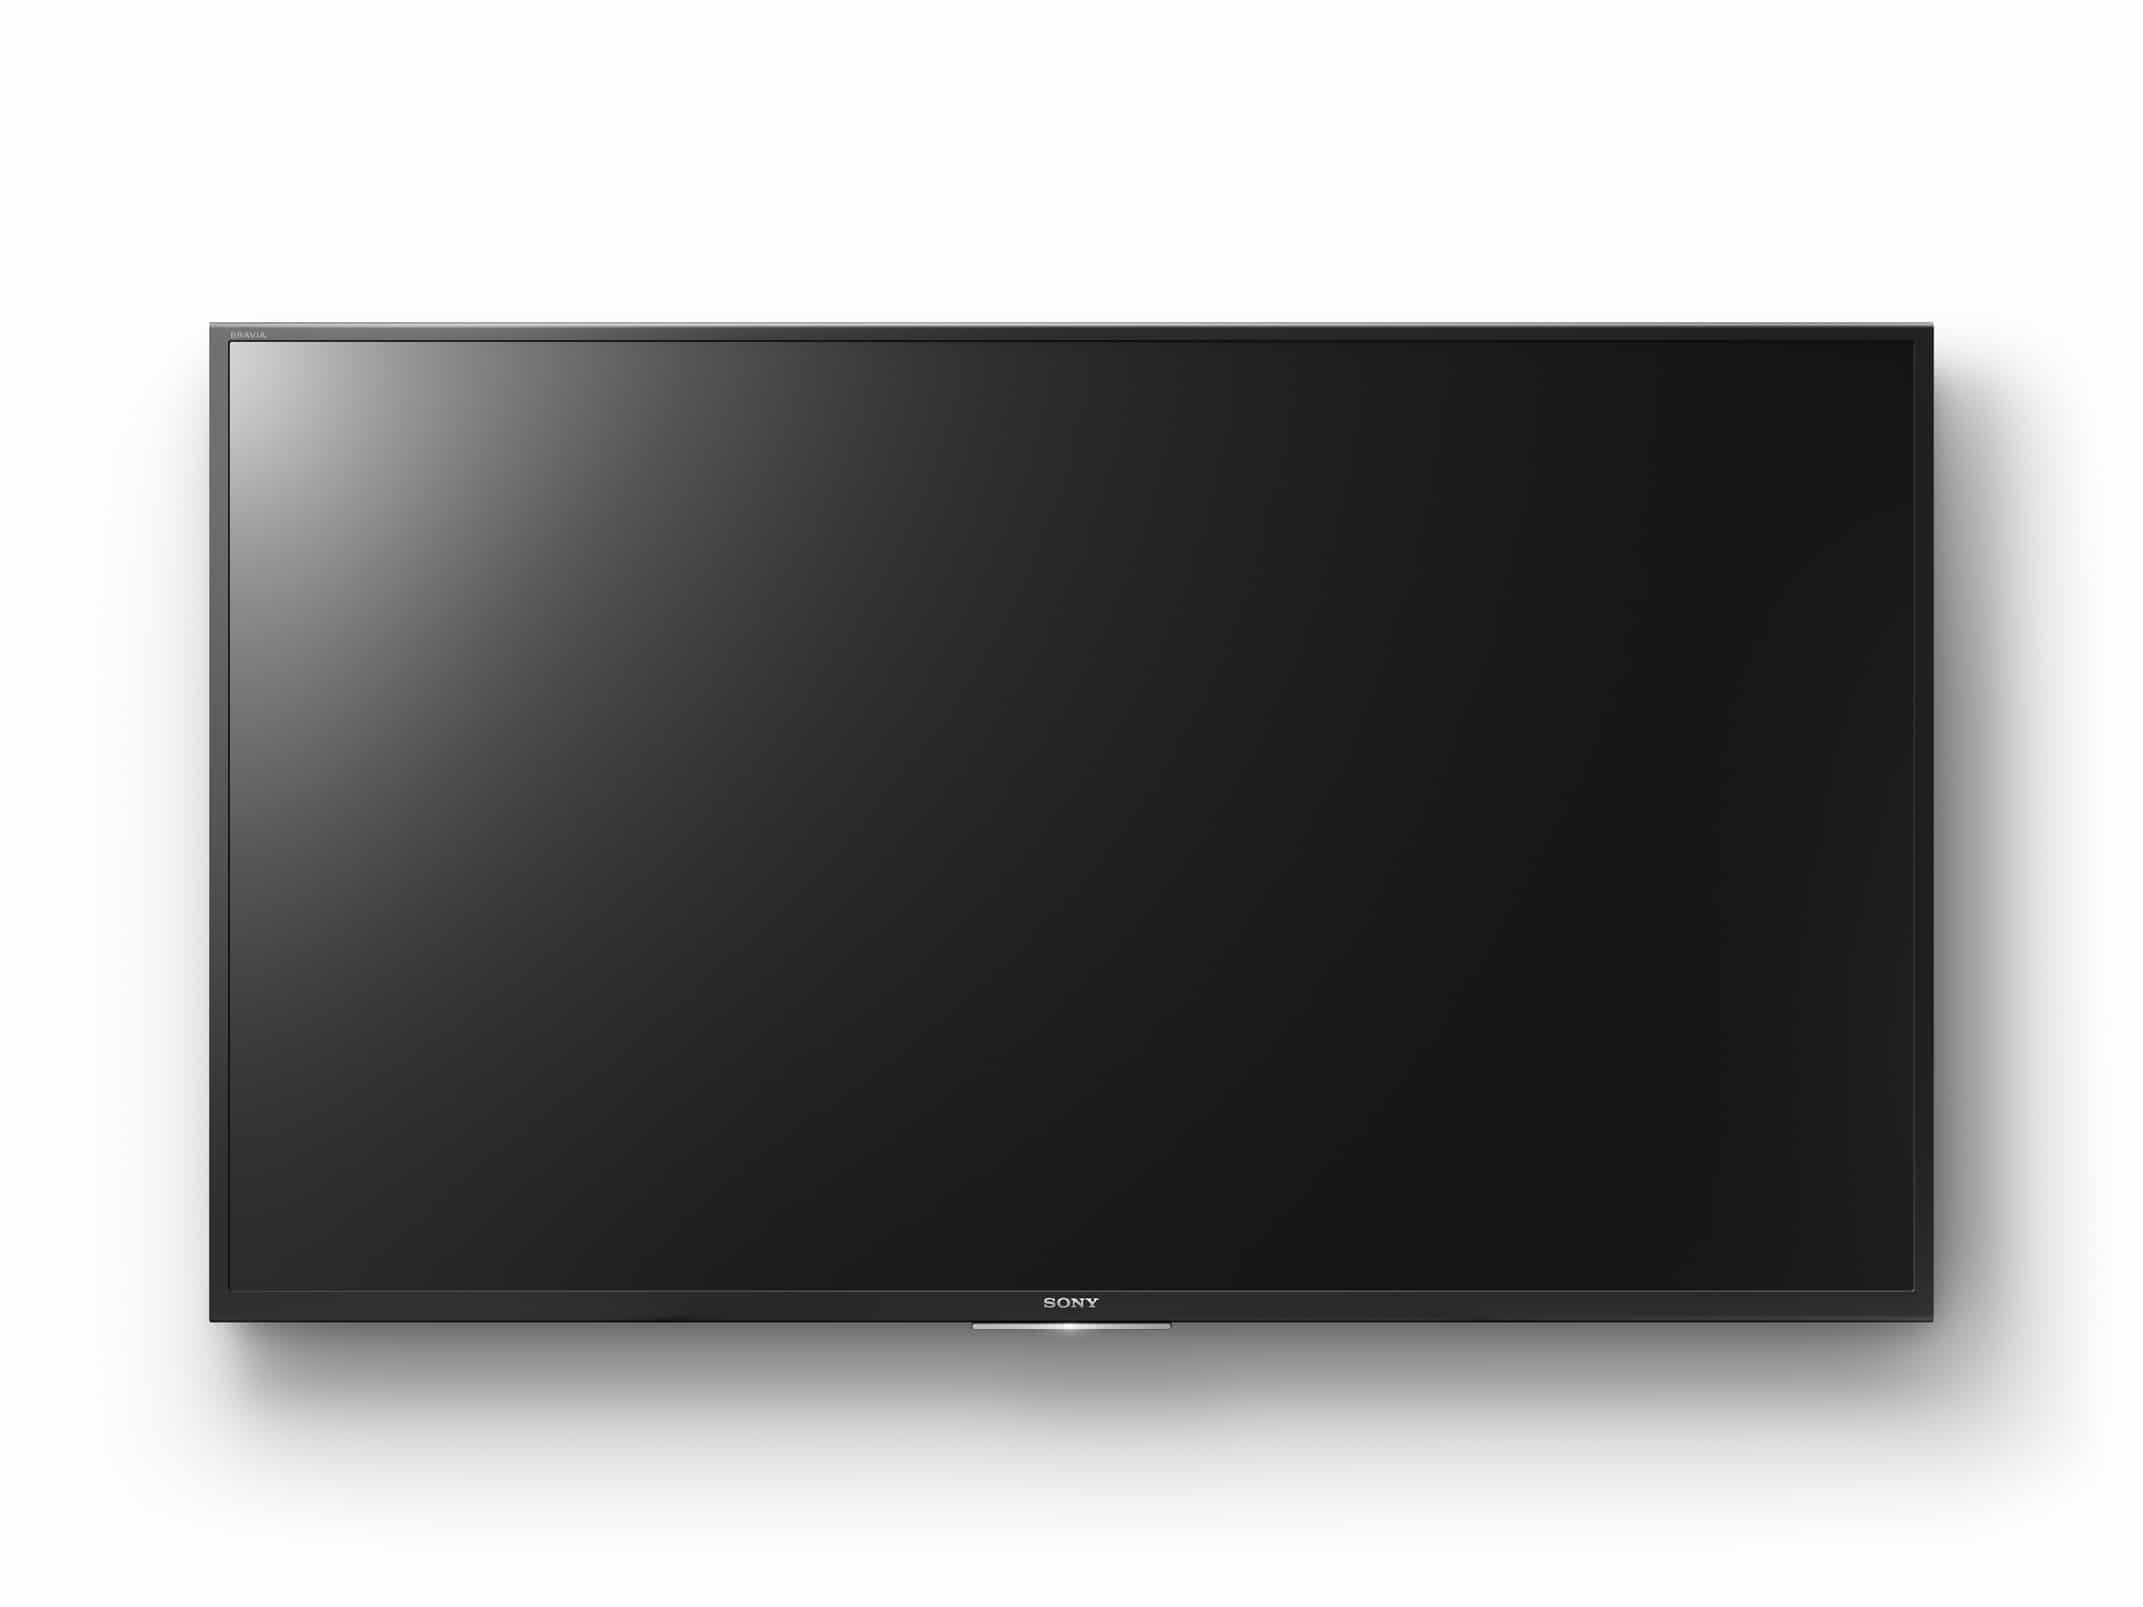 sony baut 4k hdr tv segment aus 9 neue modelle. Black Bedroom Furniture Sets. Home Design Ideas